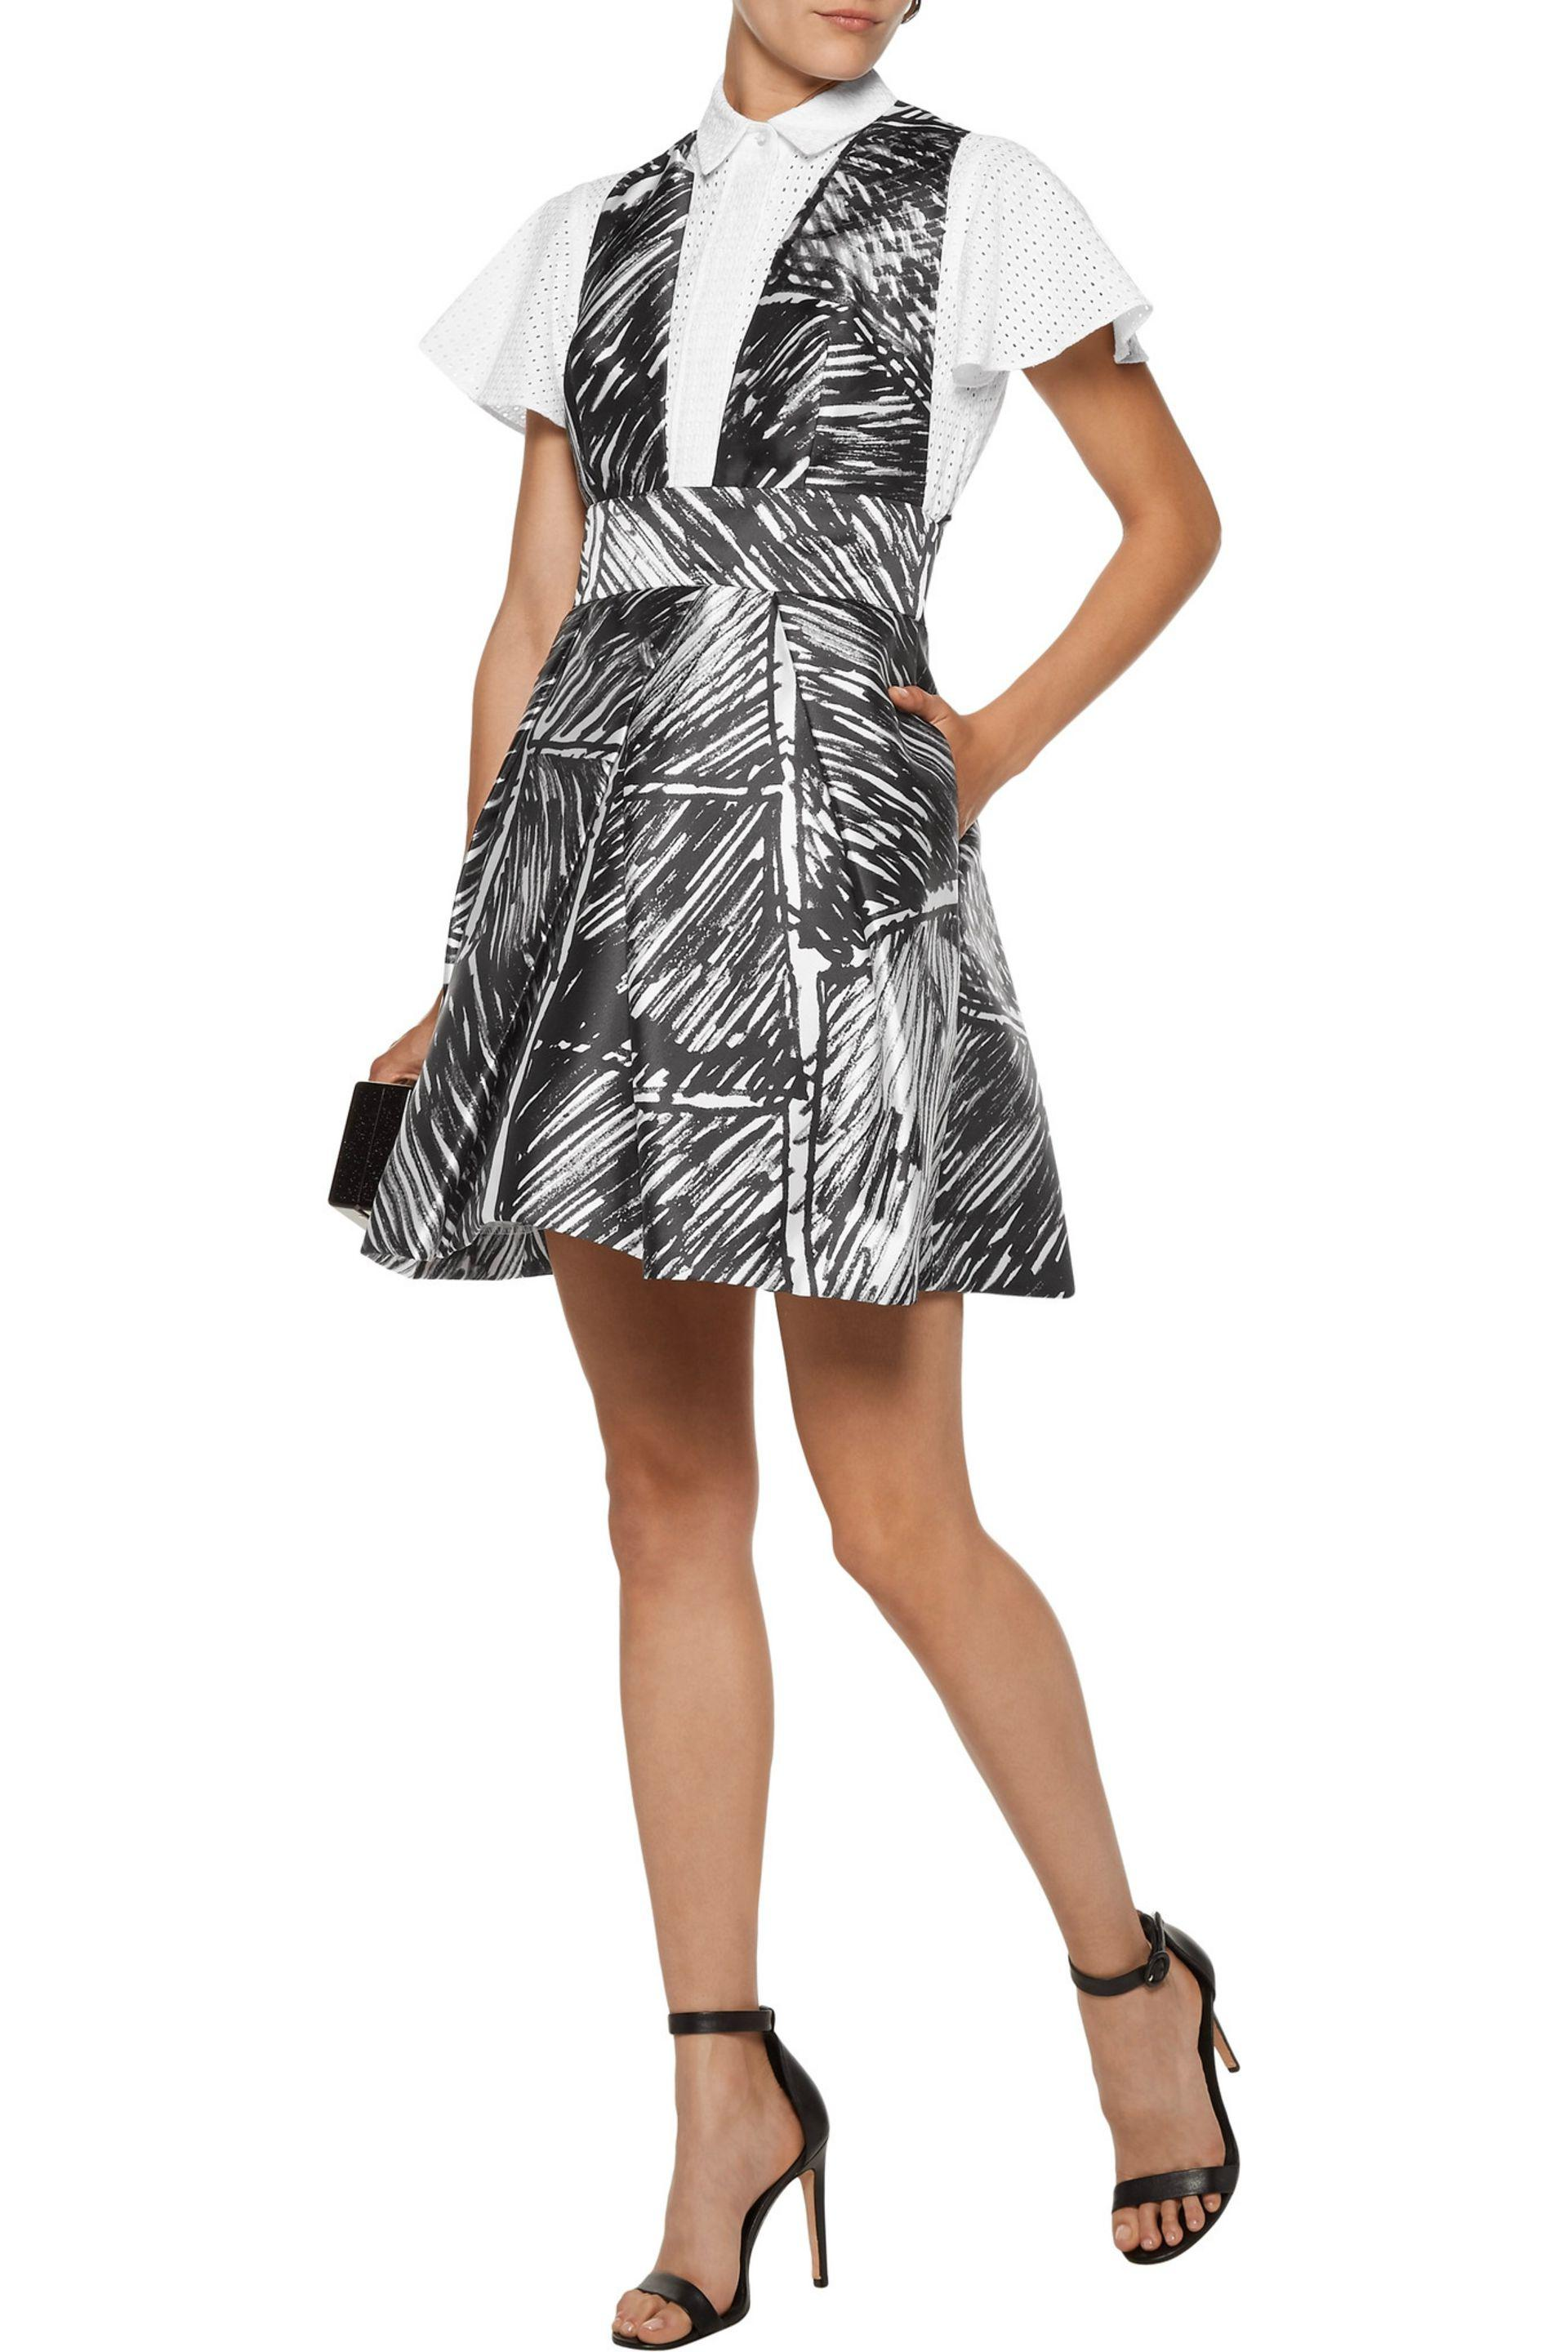 Milly Woman Elisa Pleated Printed Satin-twill Mini Dress Black Size 4 Milly 2YOcM6